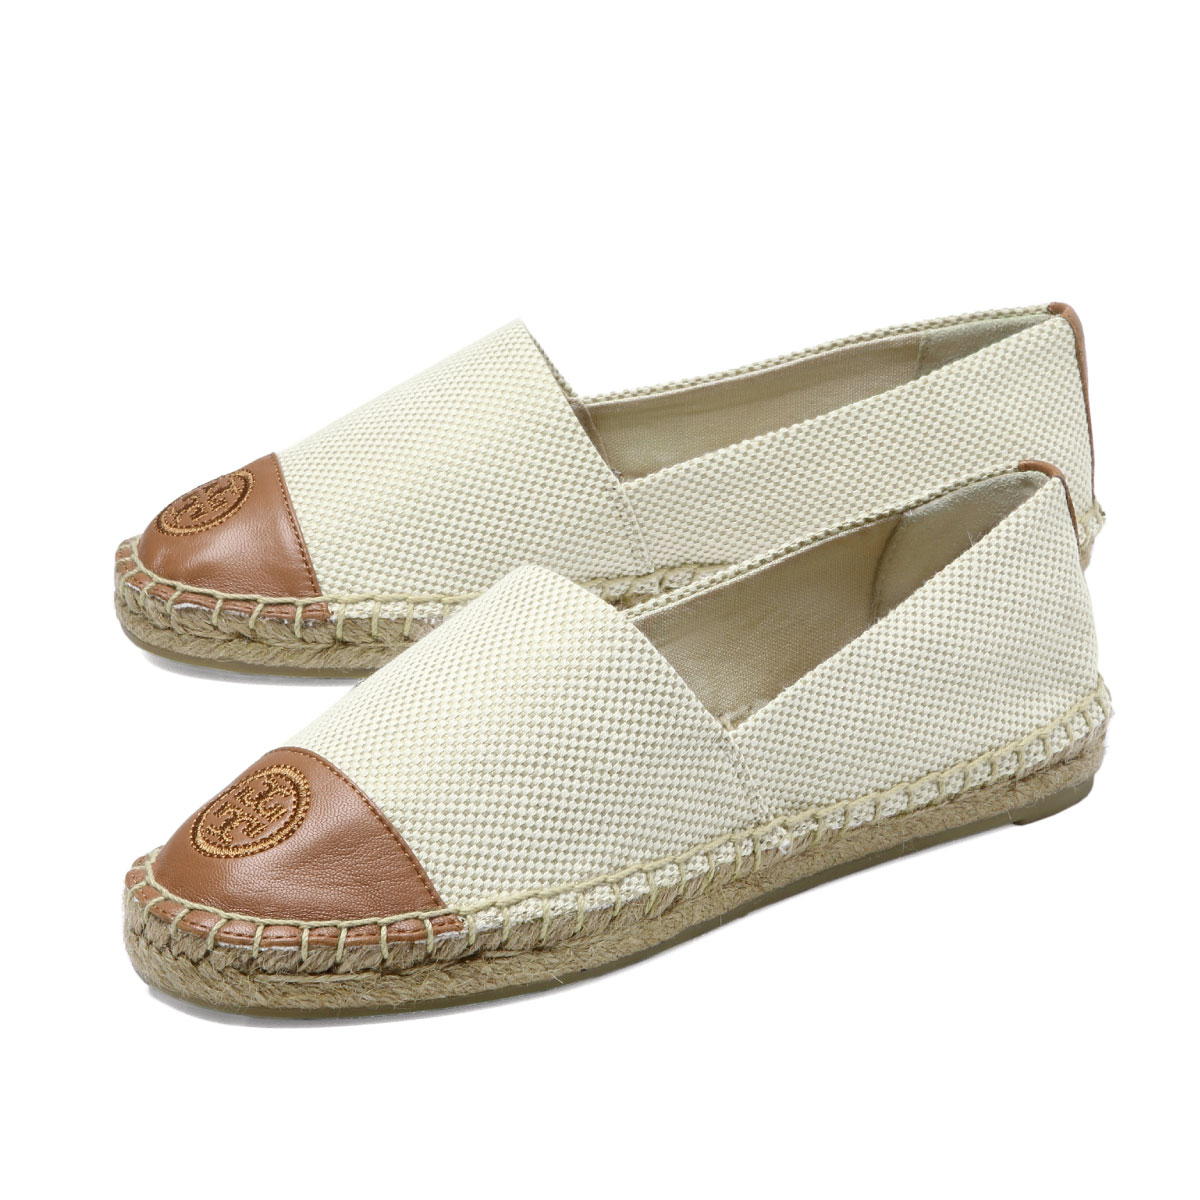 21a7ee50c importshopdouble  Tolly Birch TORY BURCH shoes Lady s 47016 276 espadrille  COLOR BLOCK FLAT color block flat NATURAL TAN is beige